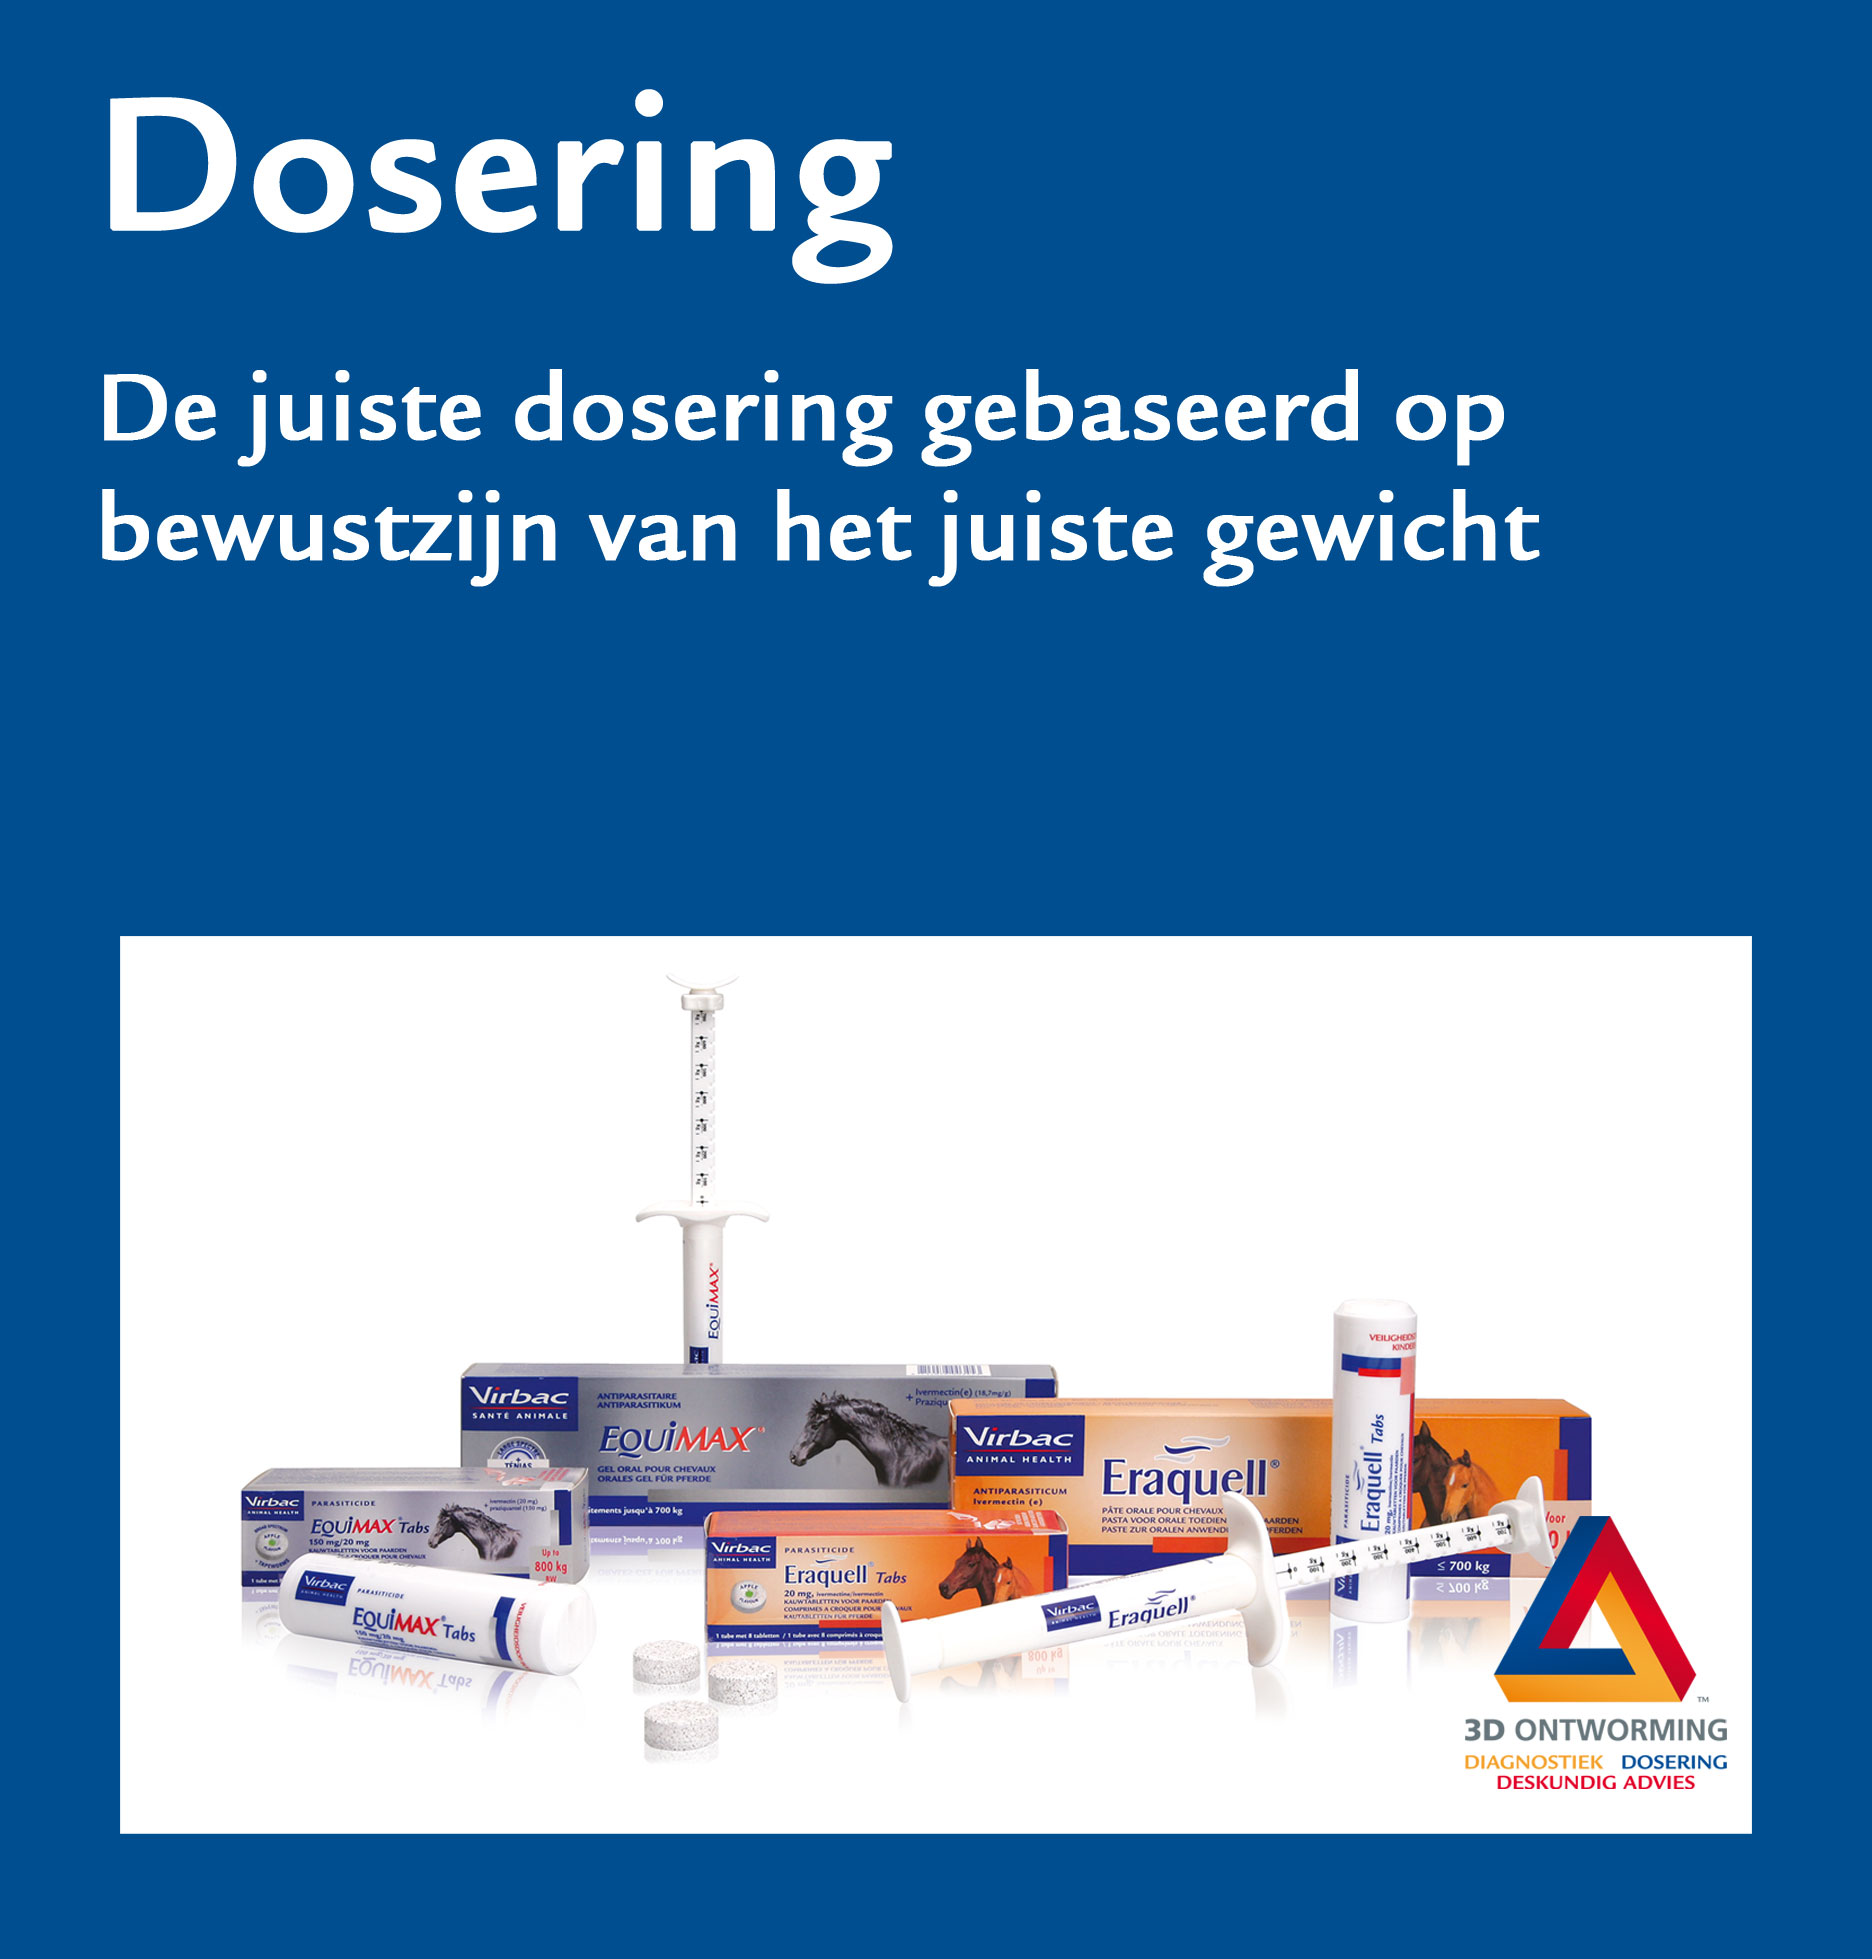 3D ontworming Dosering